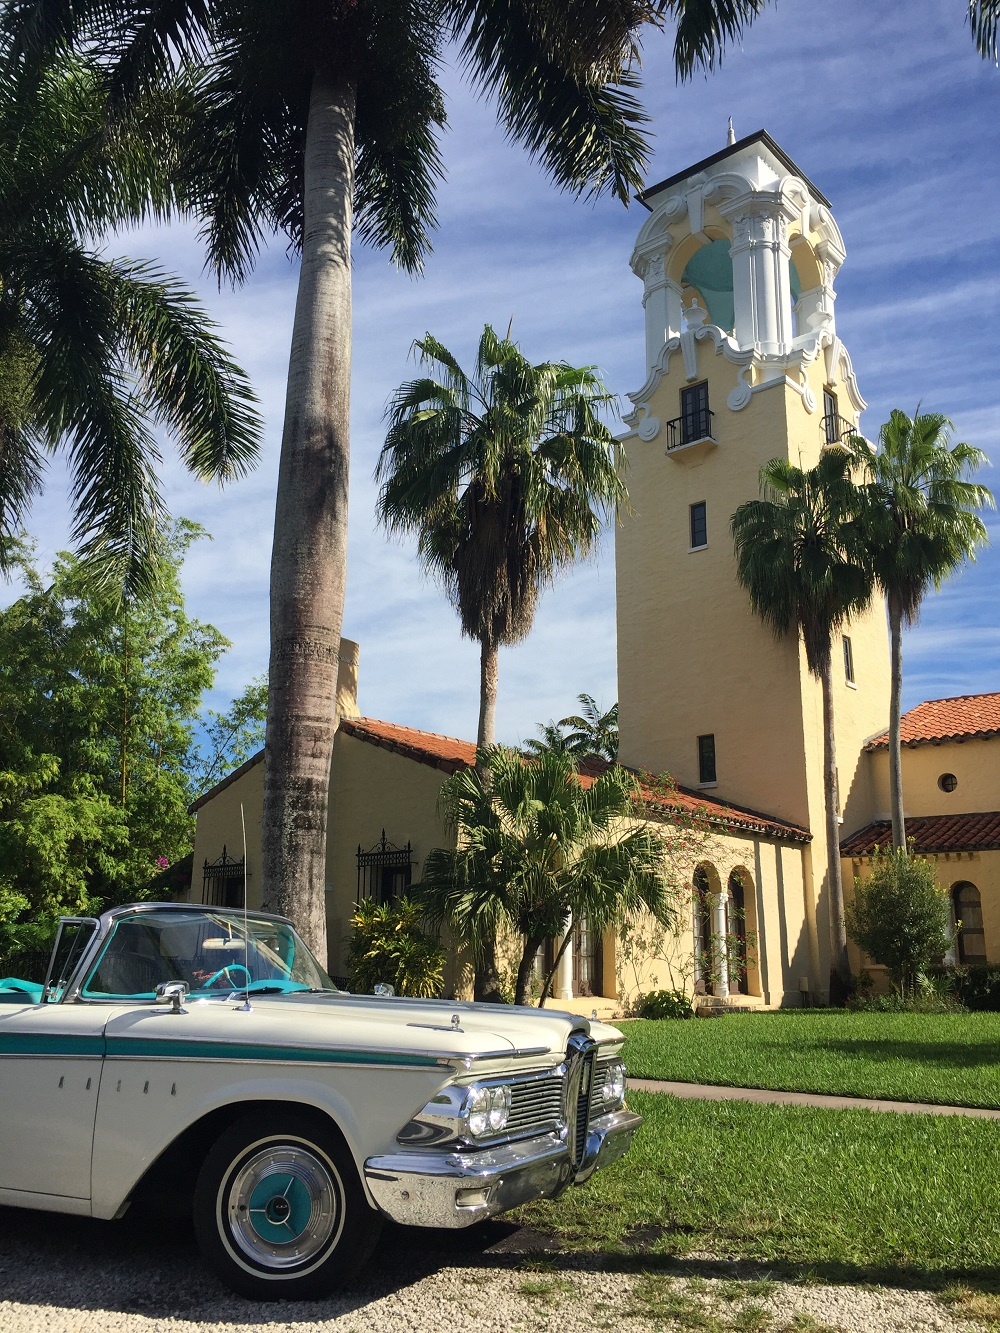 Explore Miami Touring and Sightseeing in Classic Car